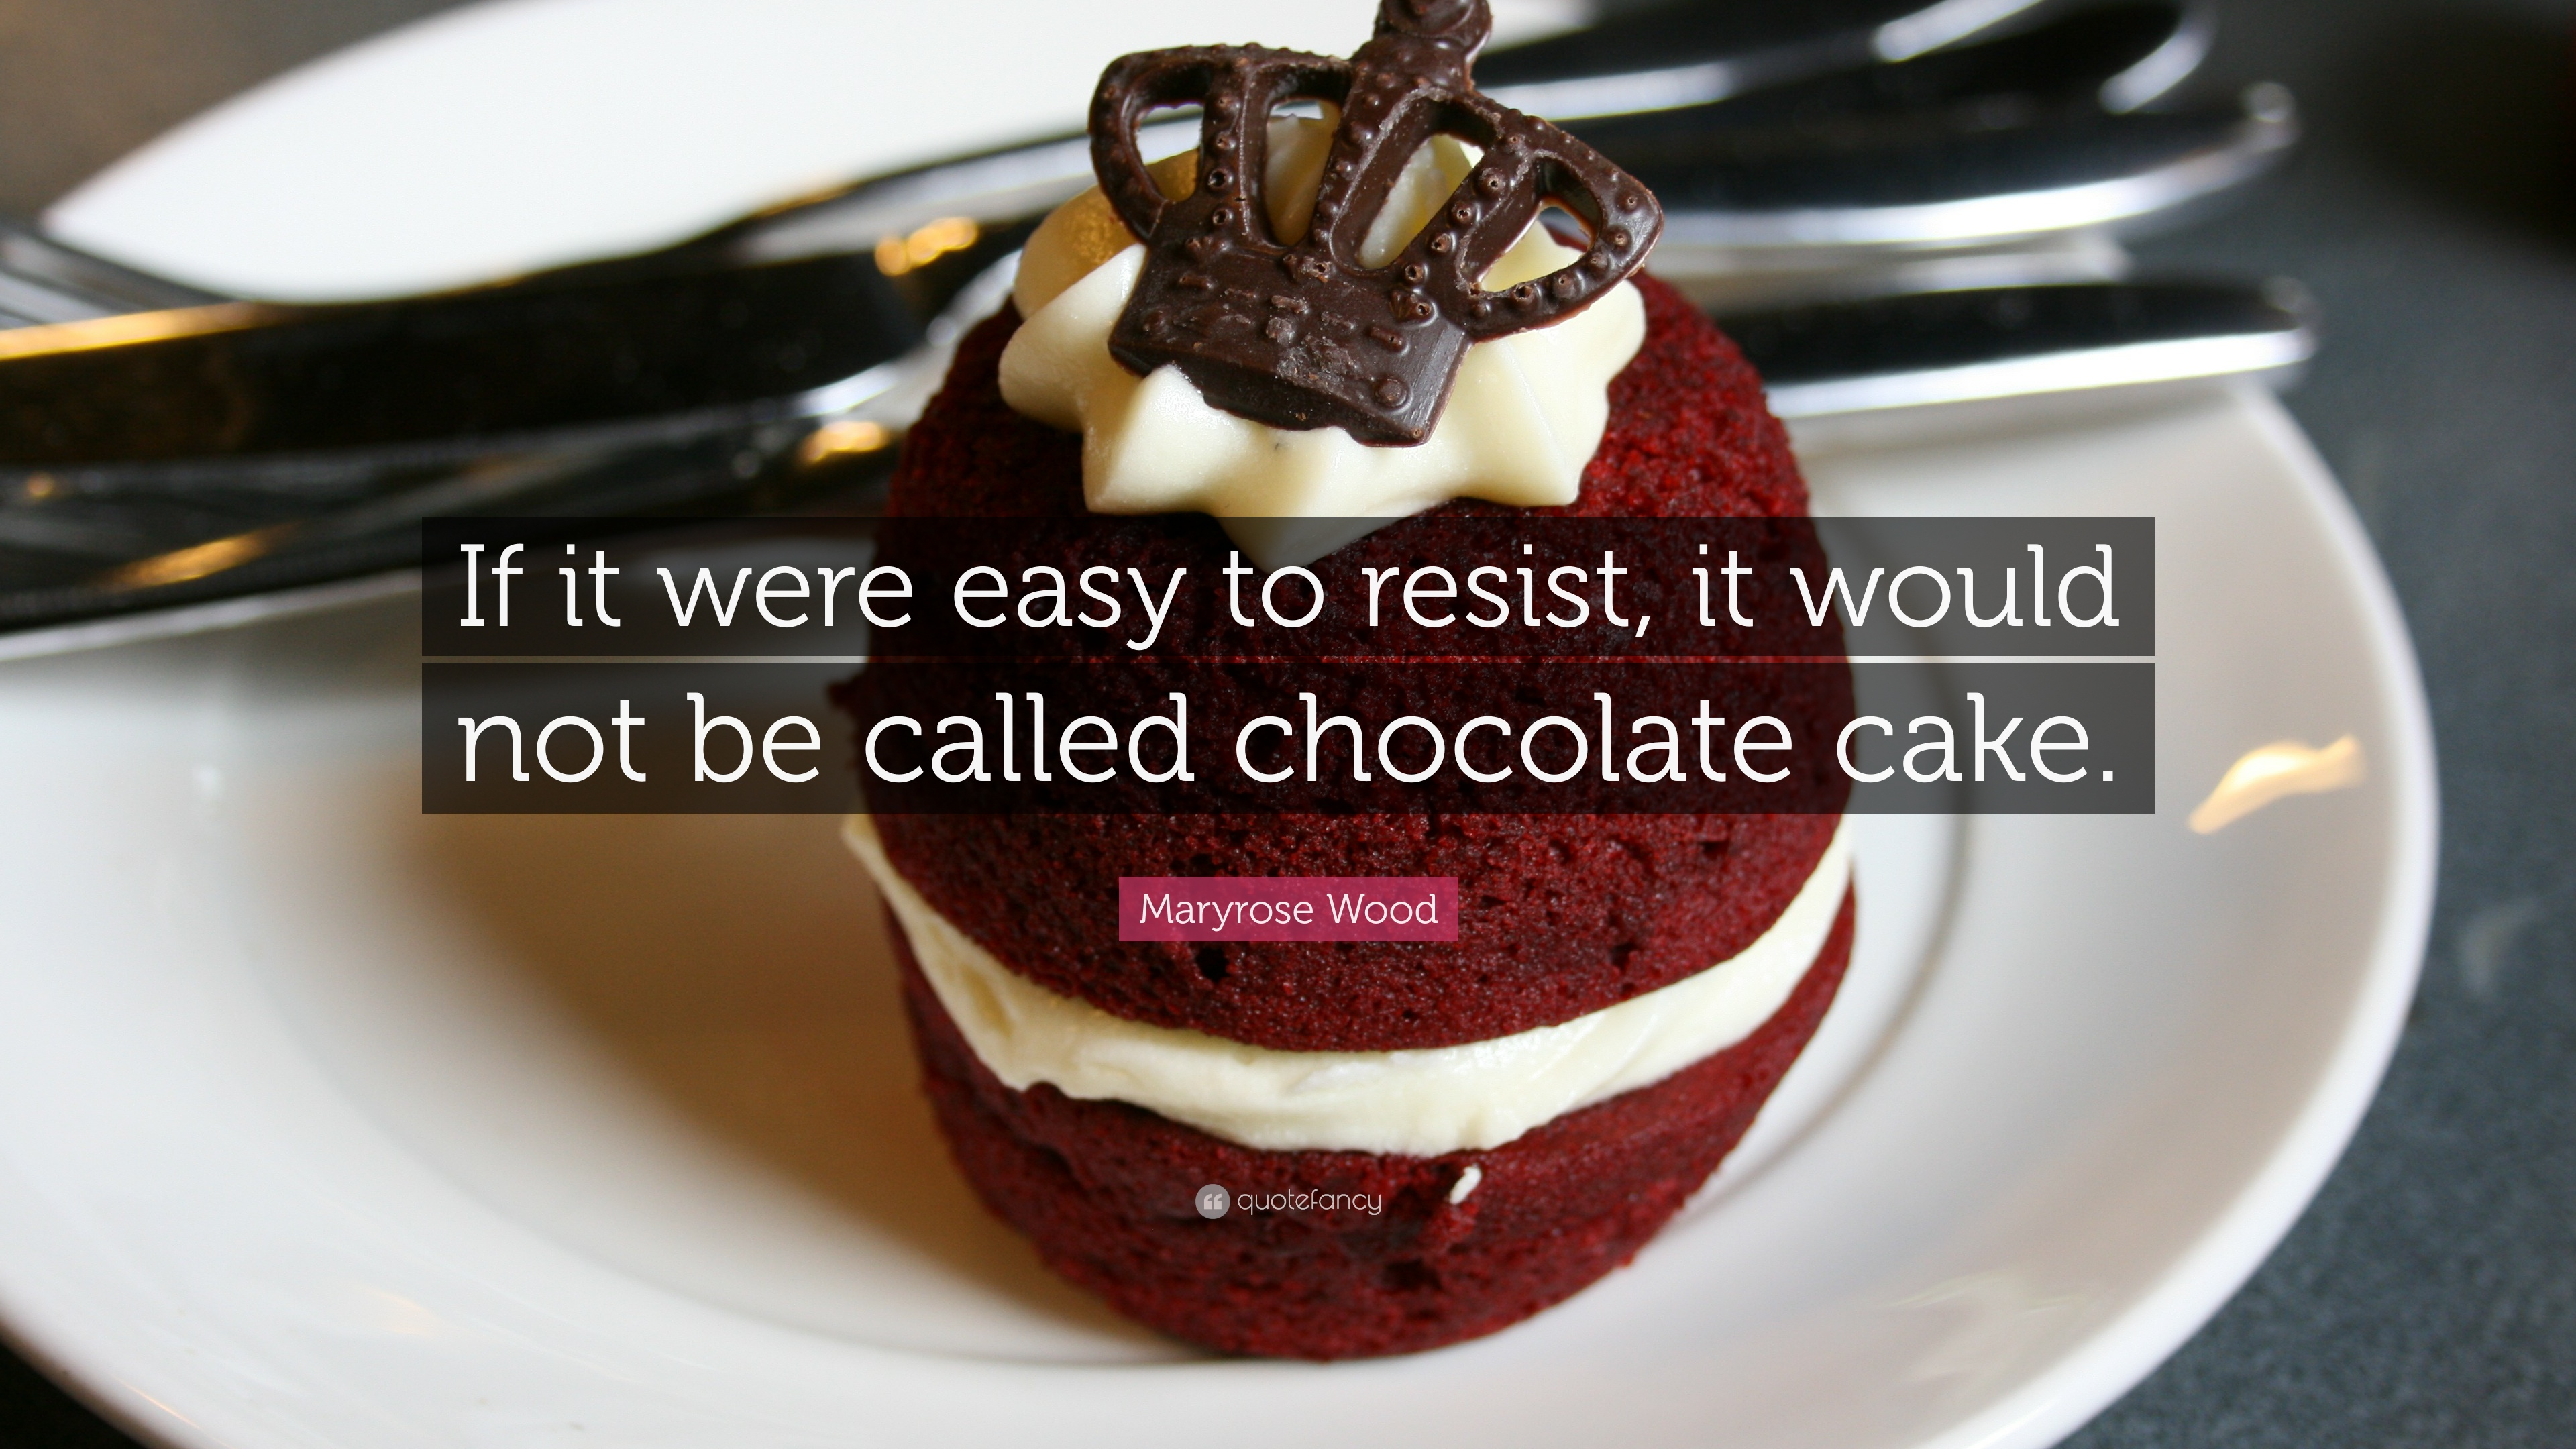 Chocolate Cake Quotes Twitter thumbnail